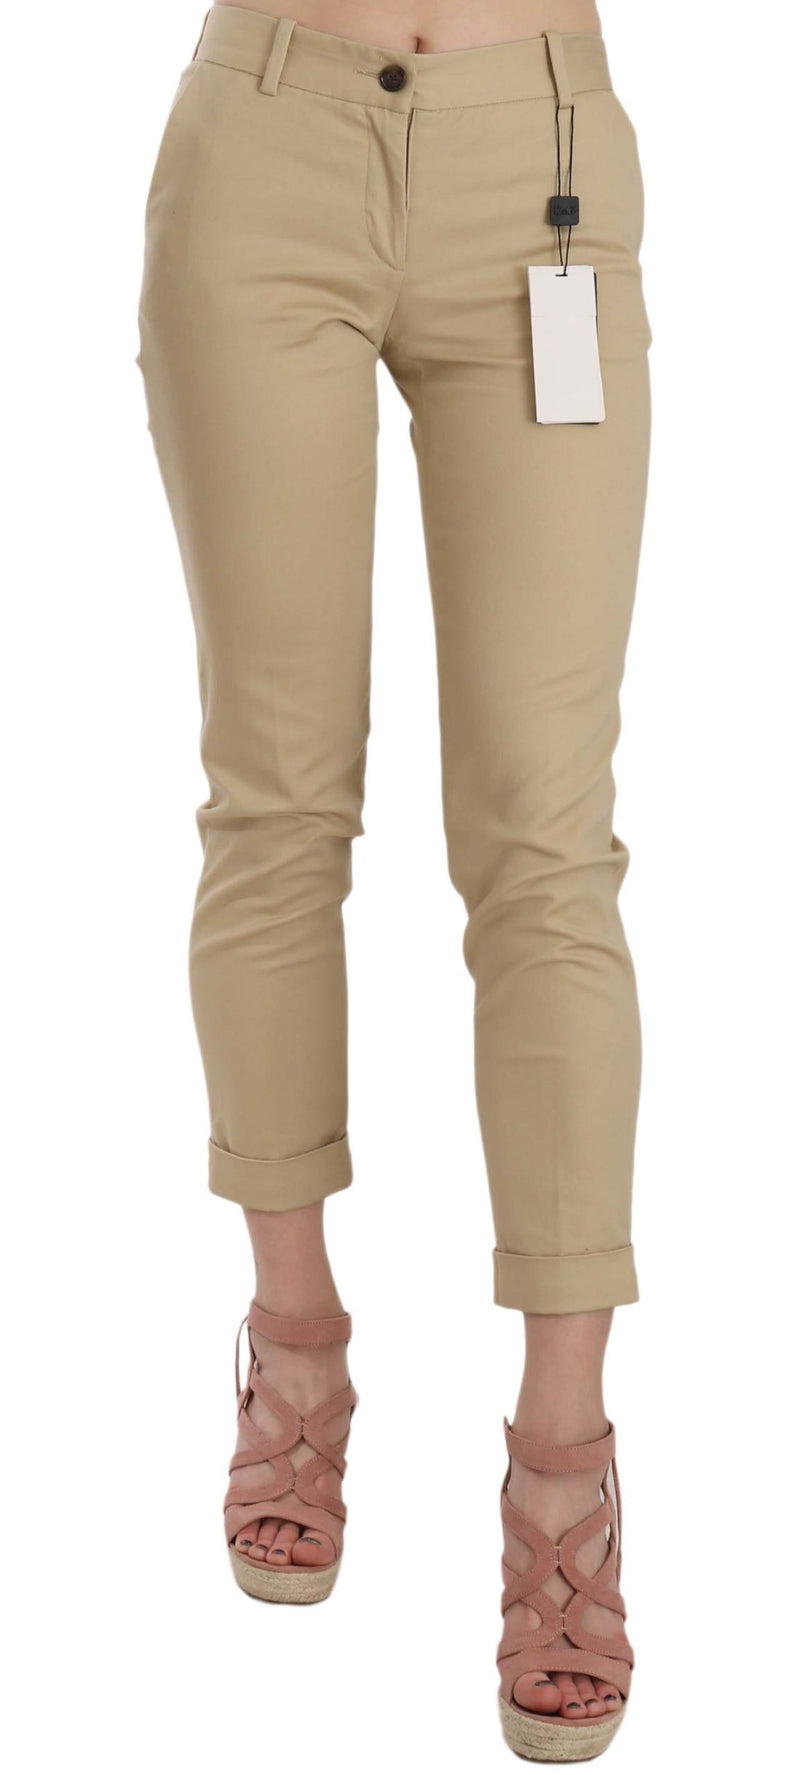 Khaki Casual Fitted Cotton Trousers Pants